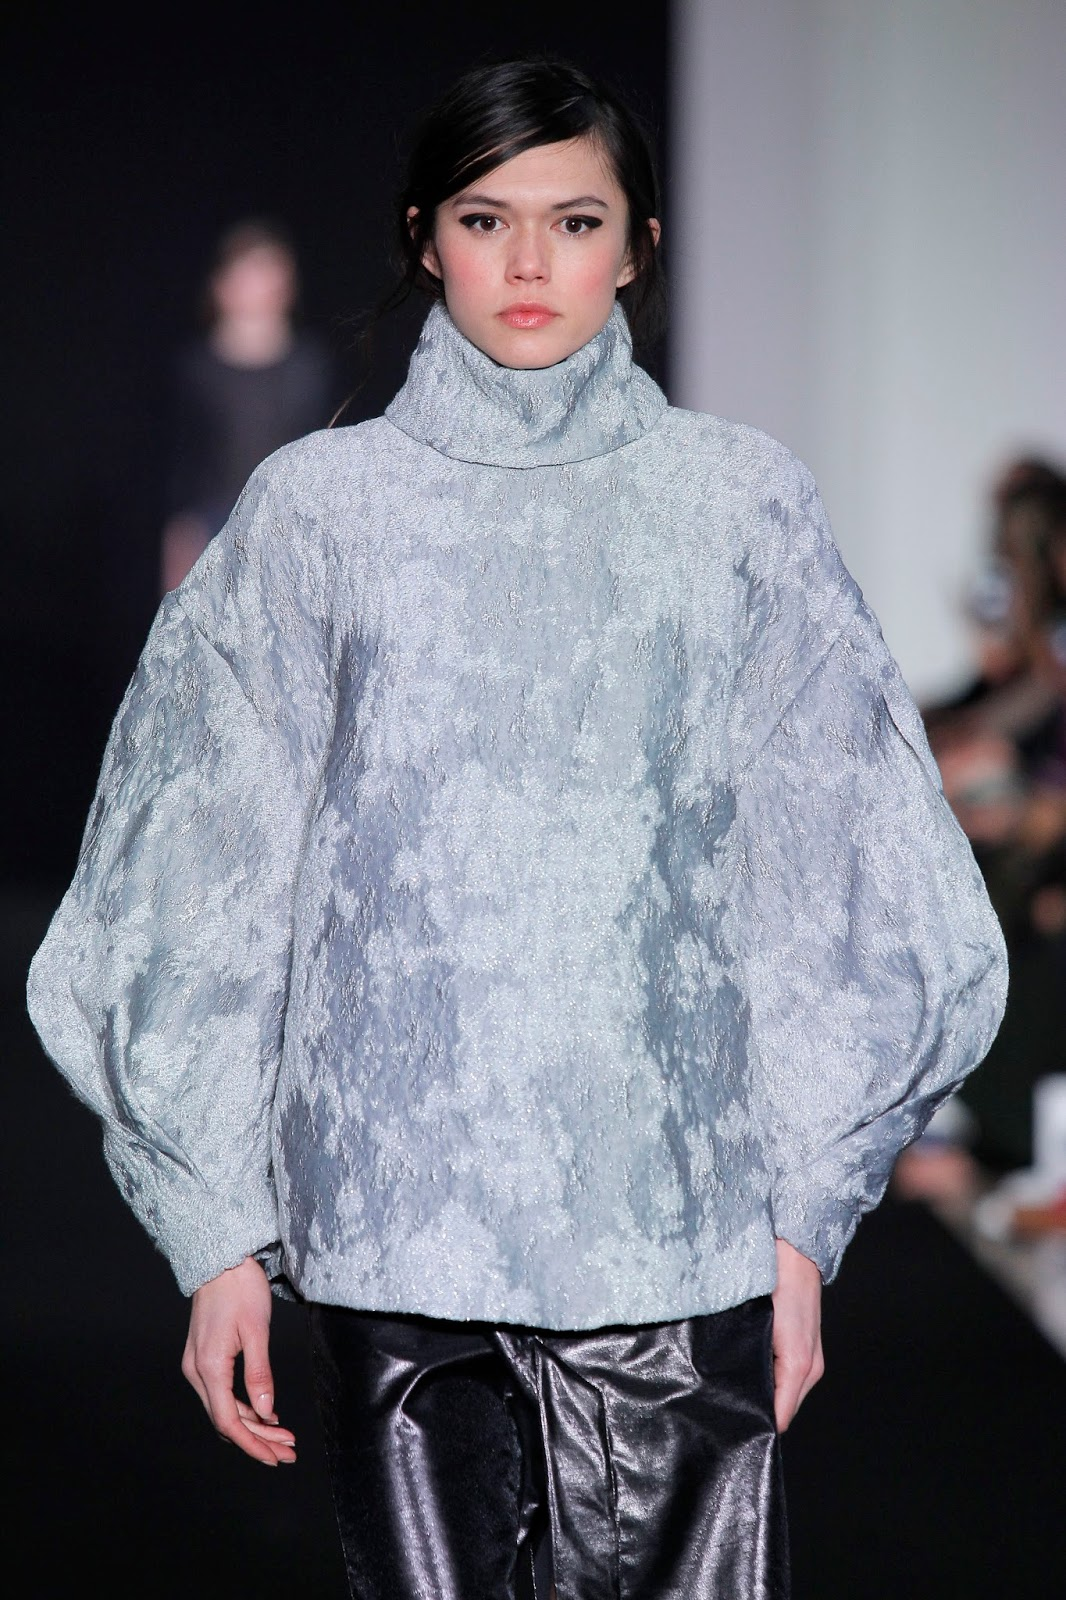 DIOGO MIRANDA FALL WINTER 2016/17 | PARIS FASHION WEEK